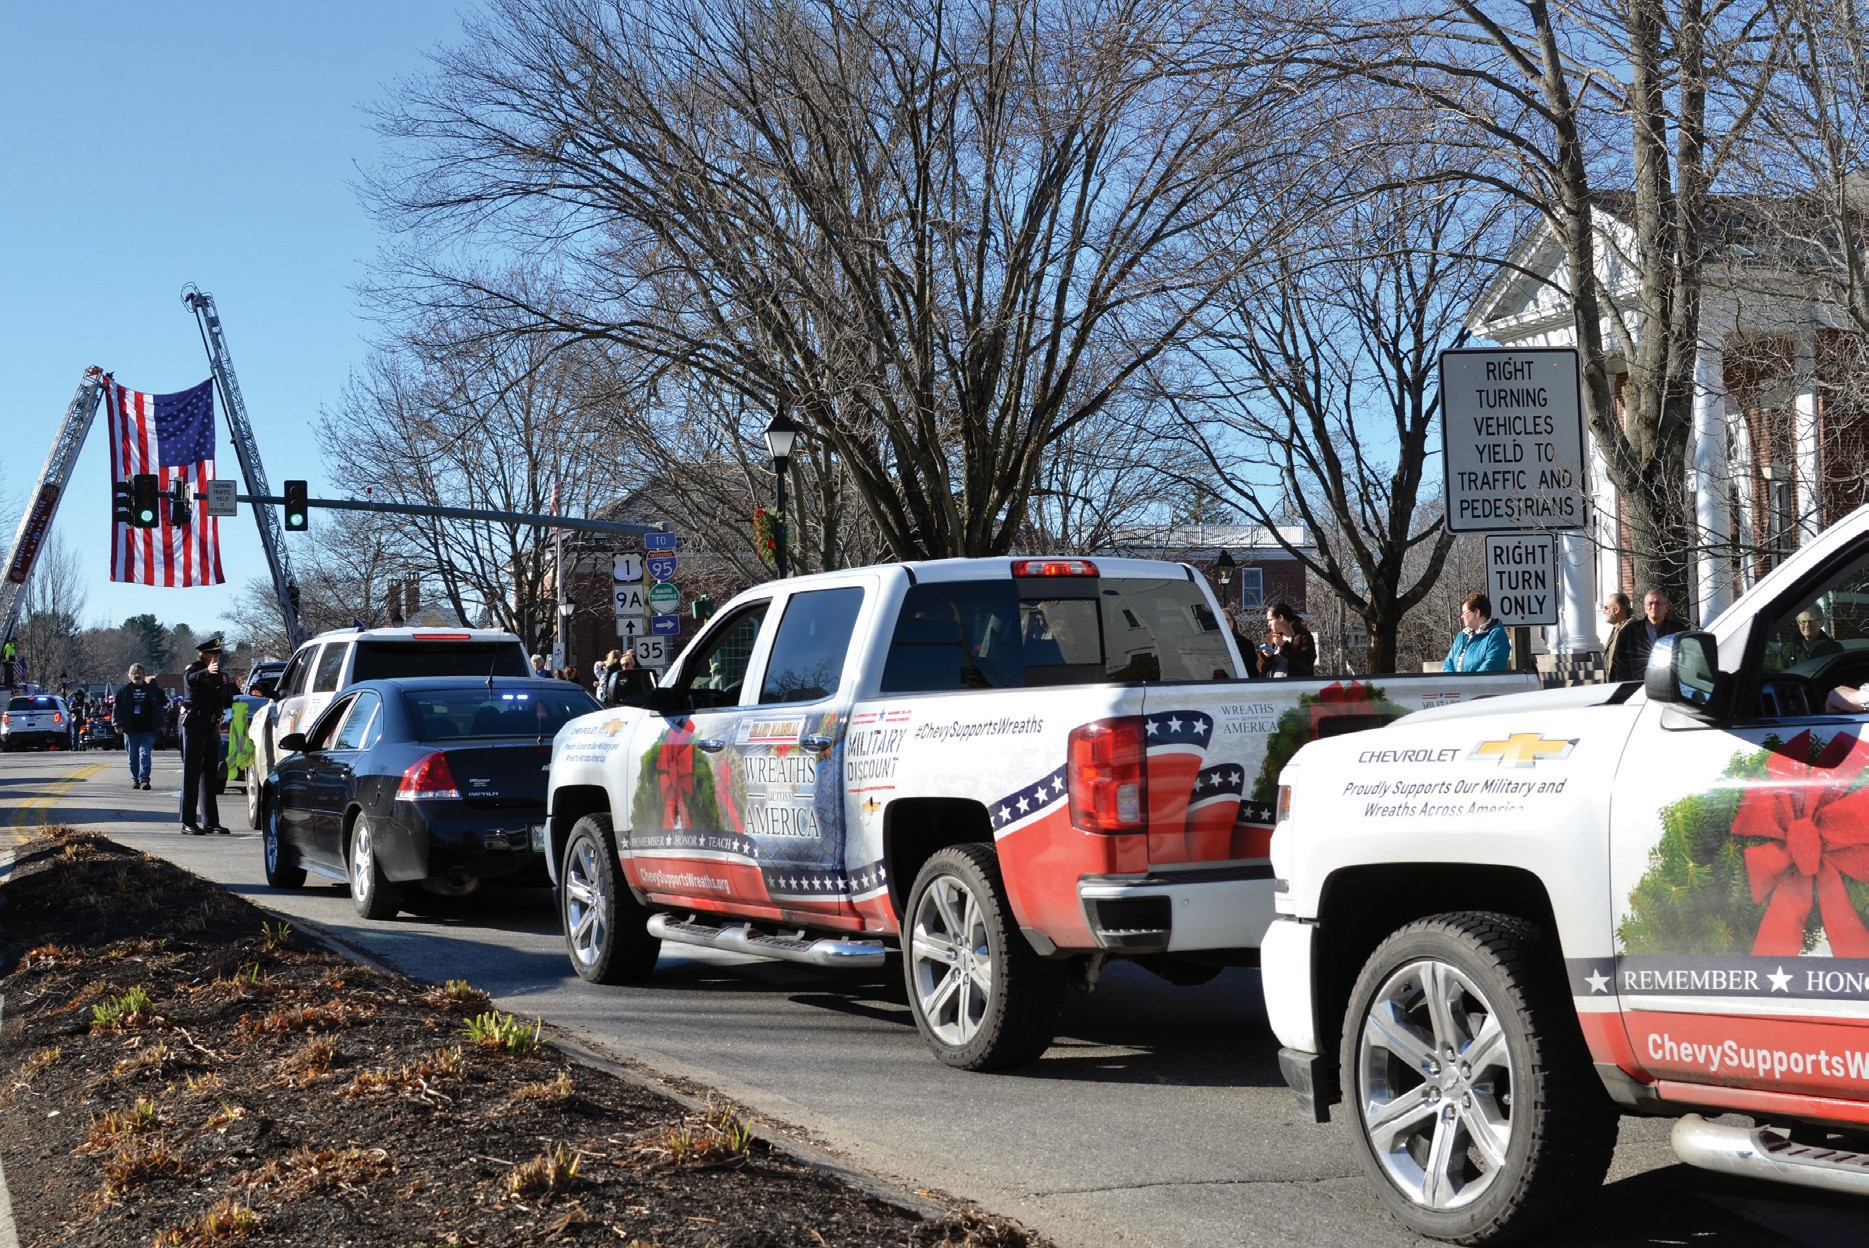 Hundreds of trucks carrying wreaths travel from Maine to Arlington National Cemetery in Virginia each year as part of Wreaths Across America. On Monday, the convey stopped in several York County communities including Kennebunk, pictured here.